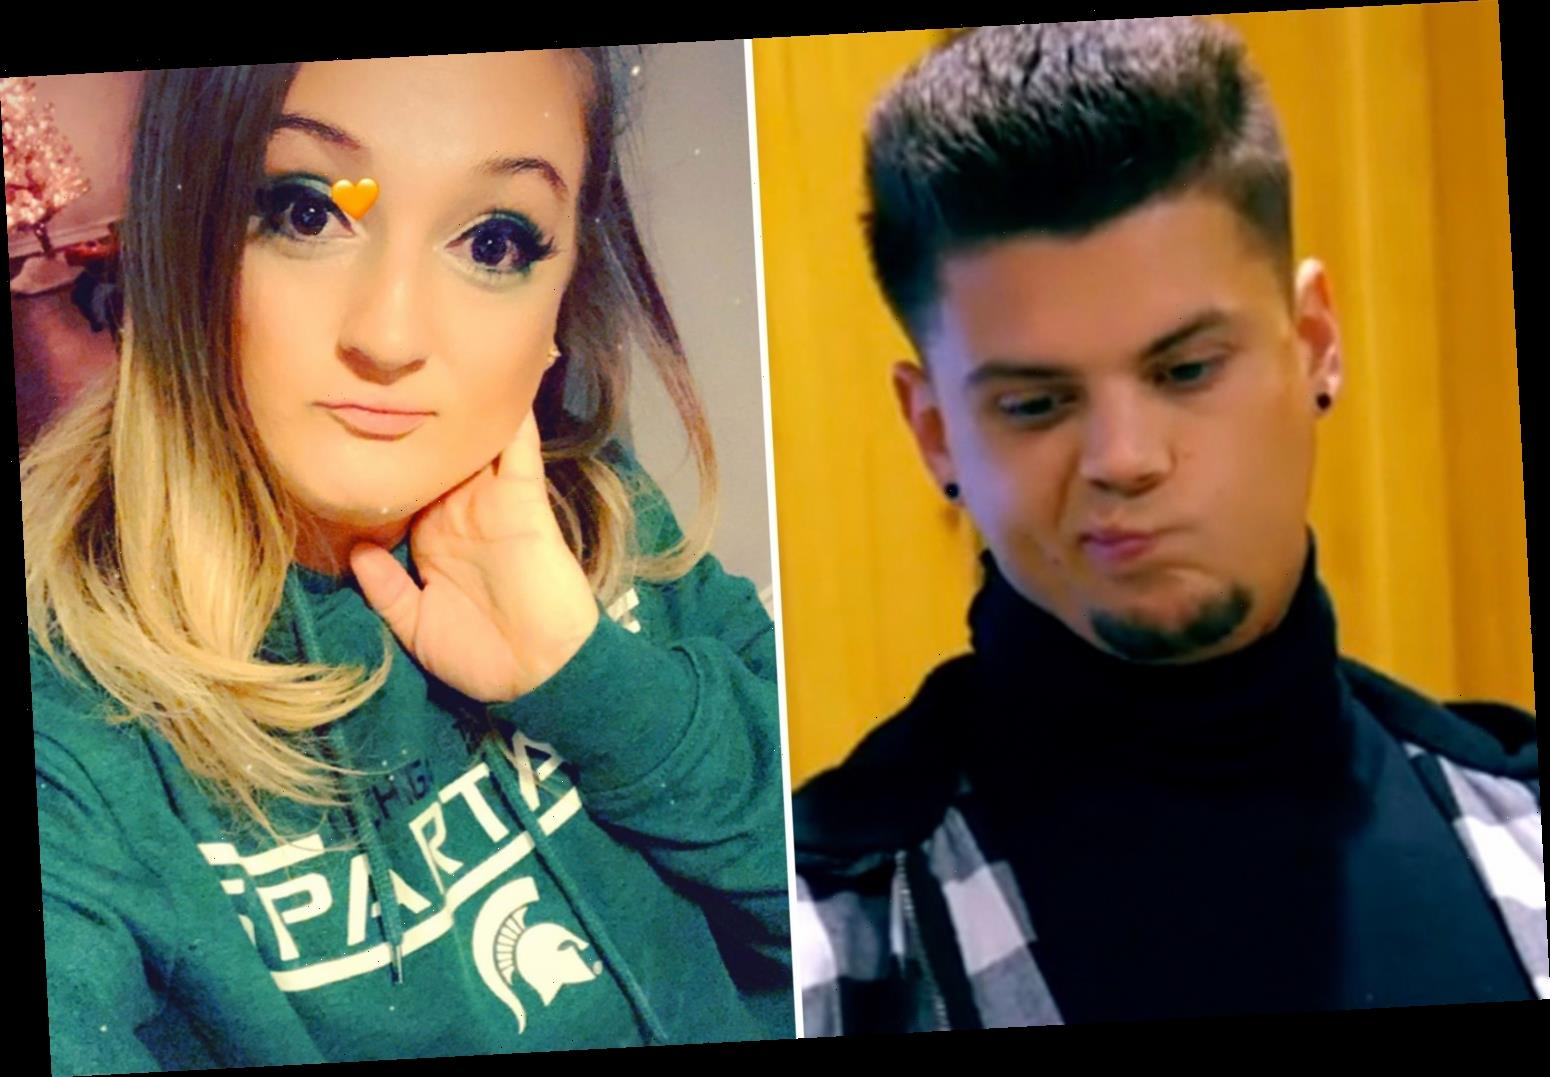 Teen Mom star Tyler Baltierra devastated as he learns addict sister Amber relapsed & is 'drinking again'